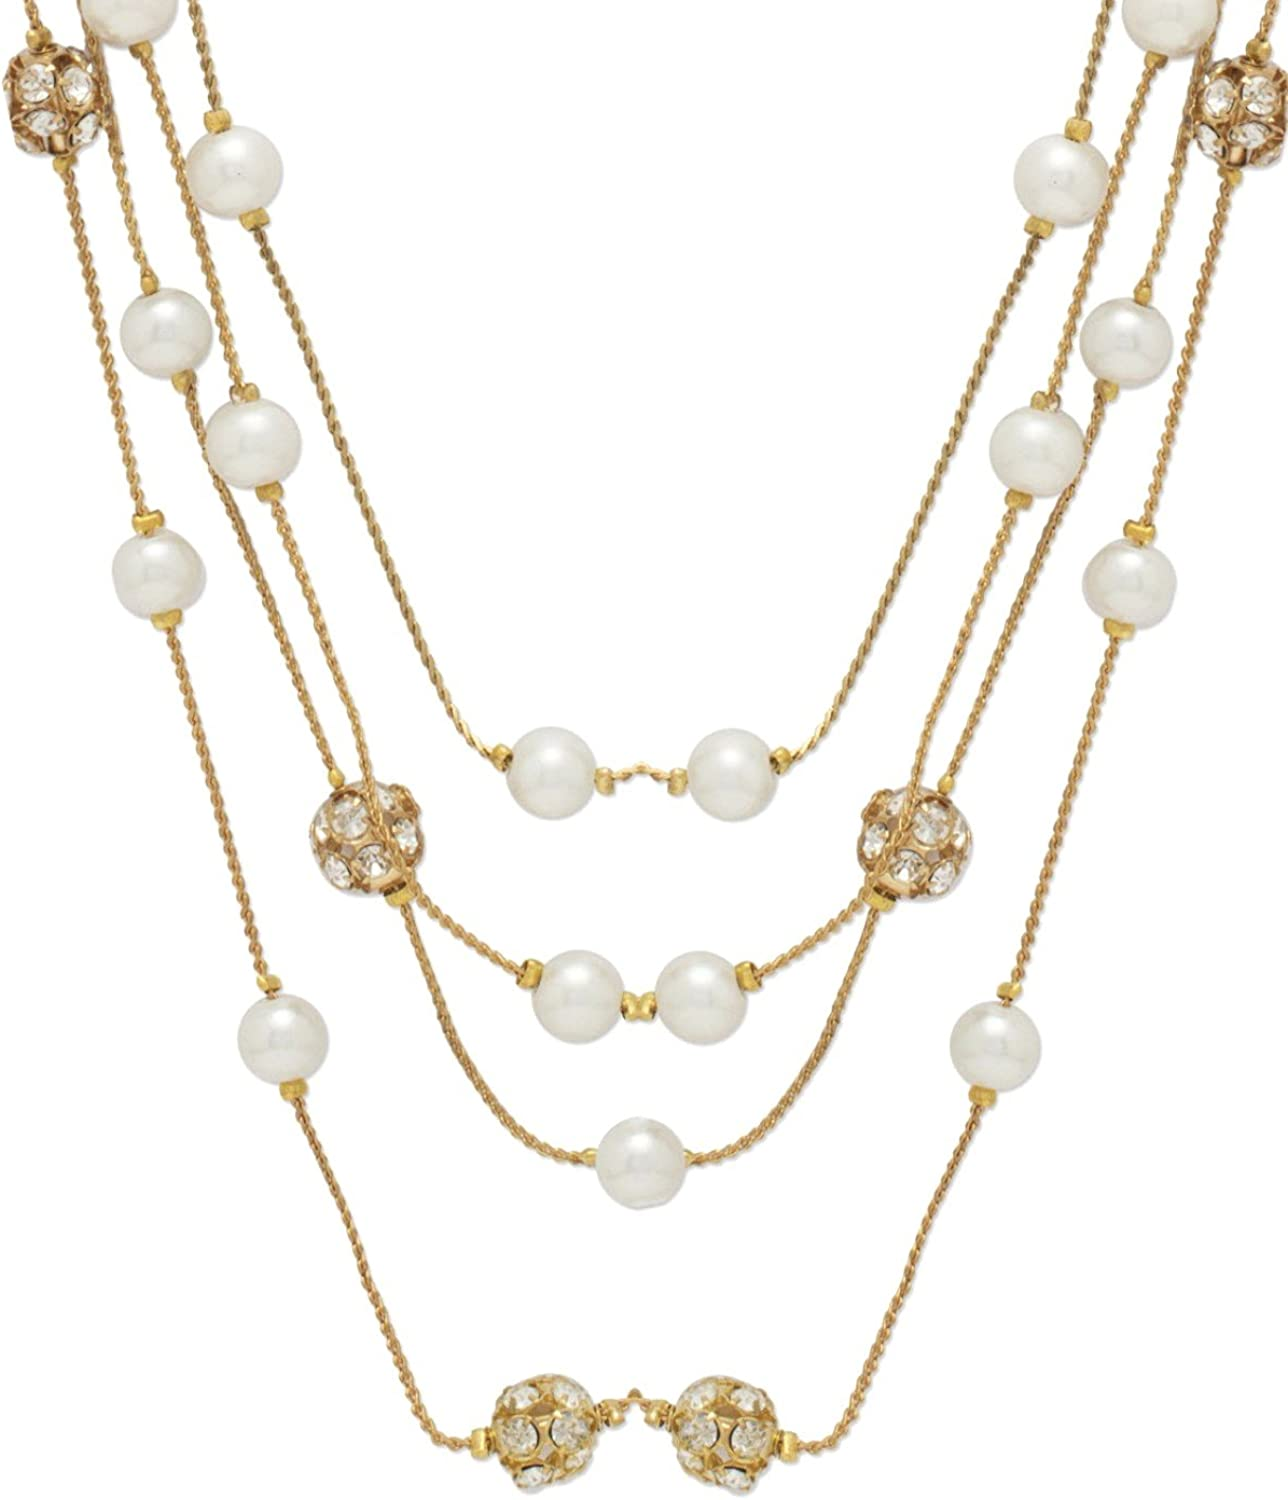 Crunchy Fashion Gold Pearl Bollywood Indian Jewelry Multi-Strand Necklace for Women